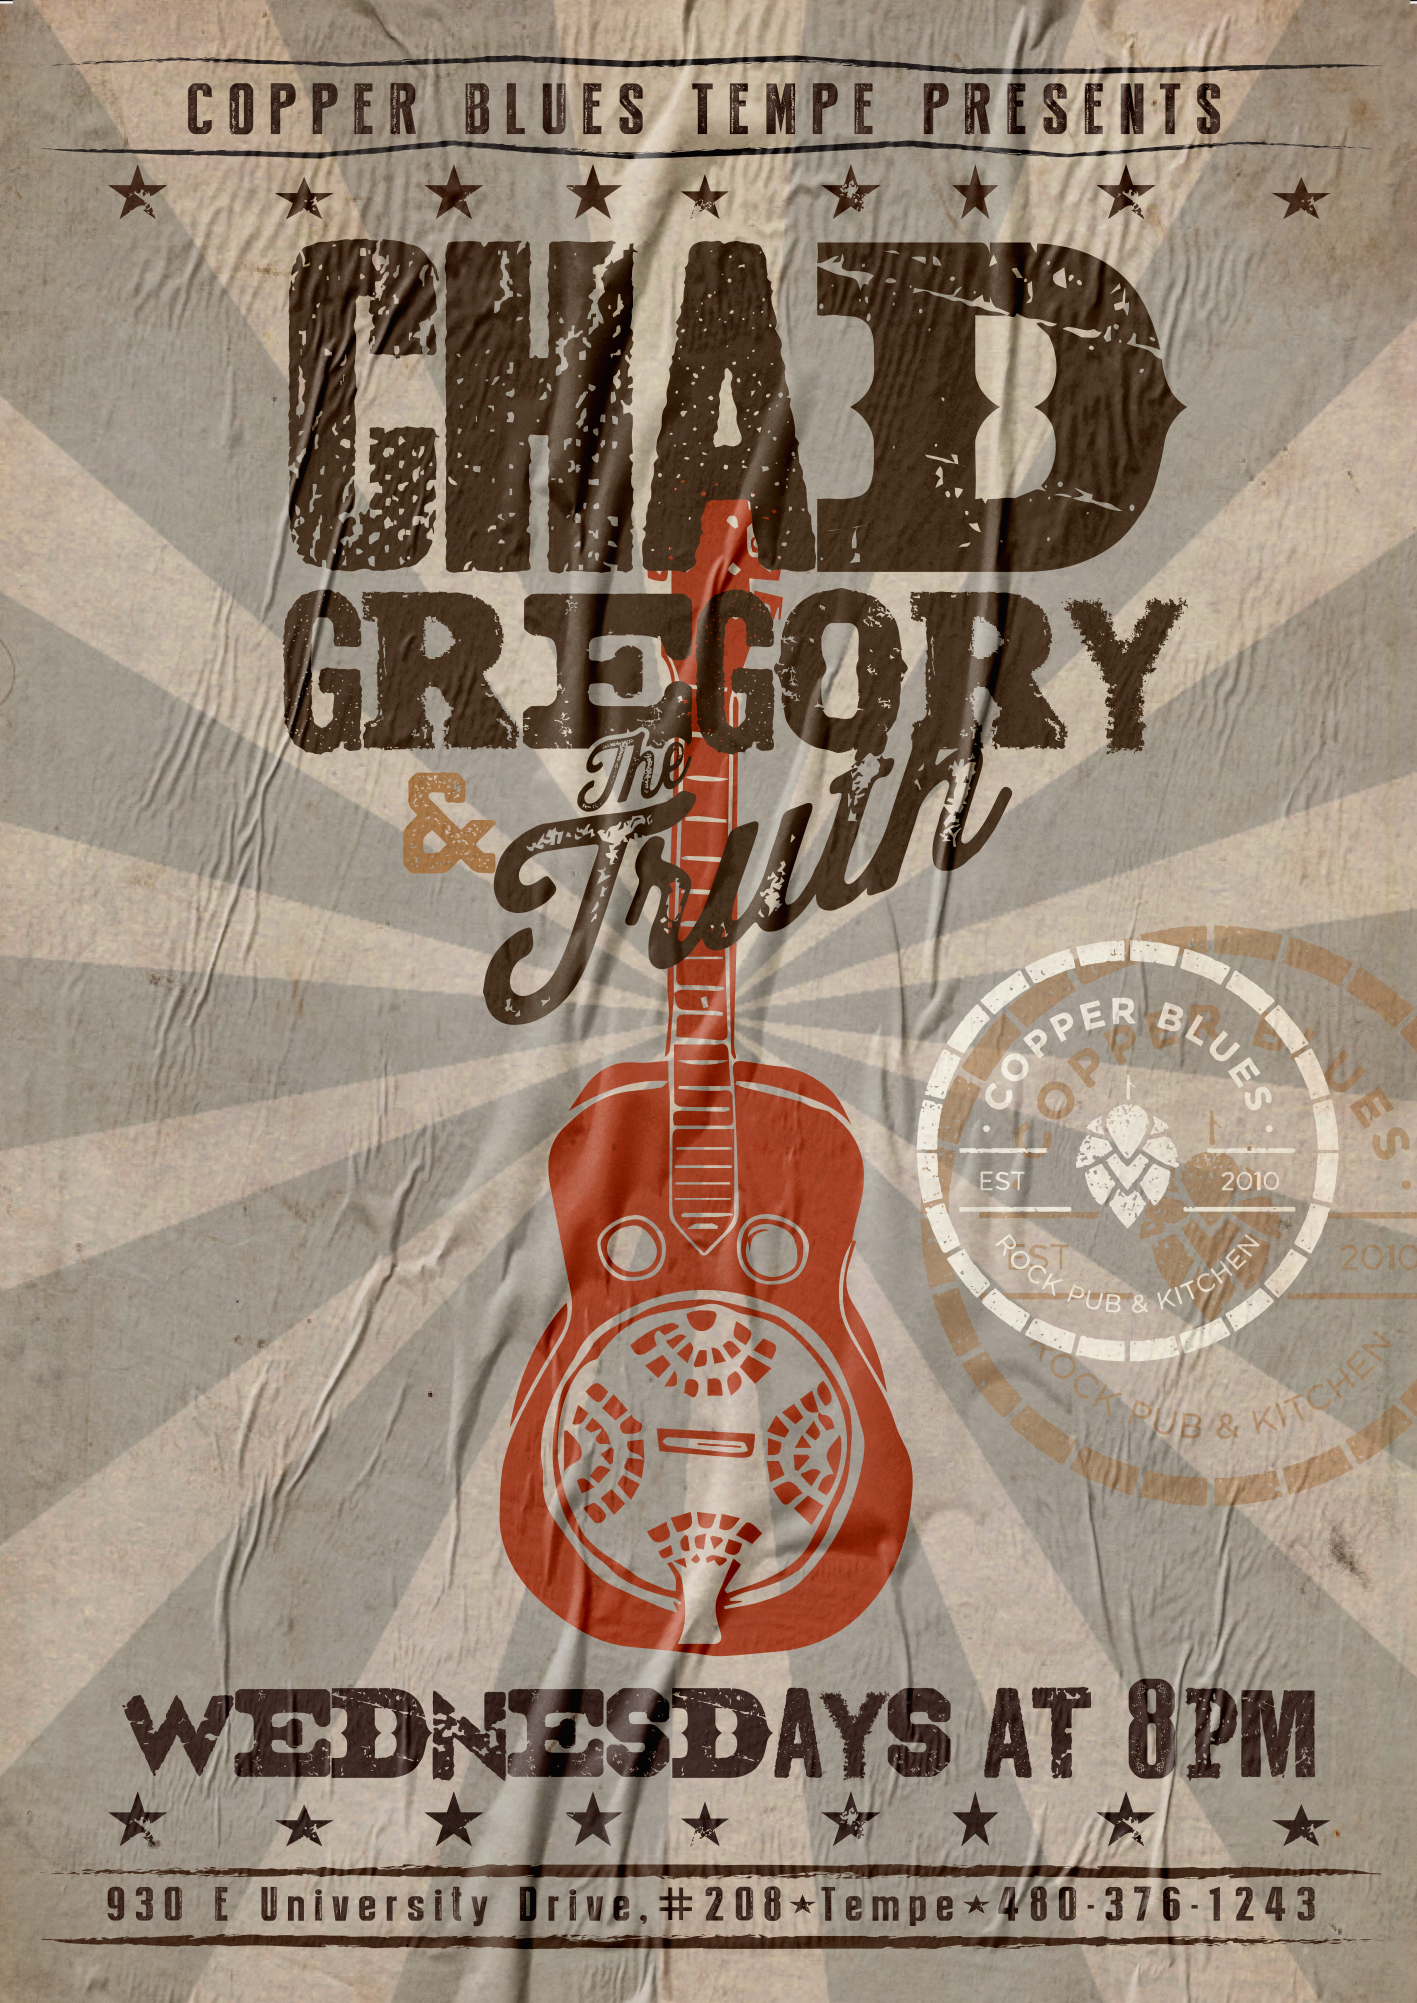 Chad Gregory Poster Art